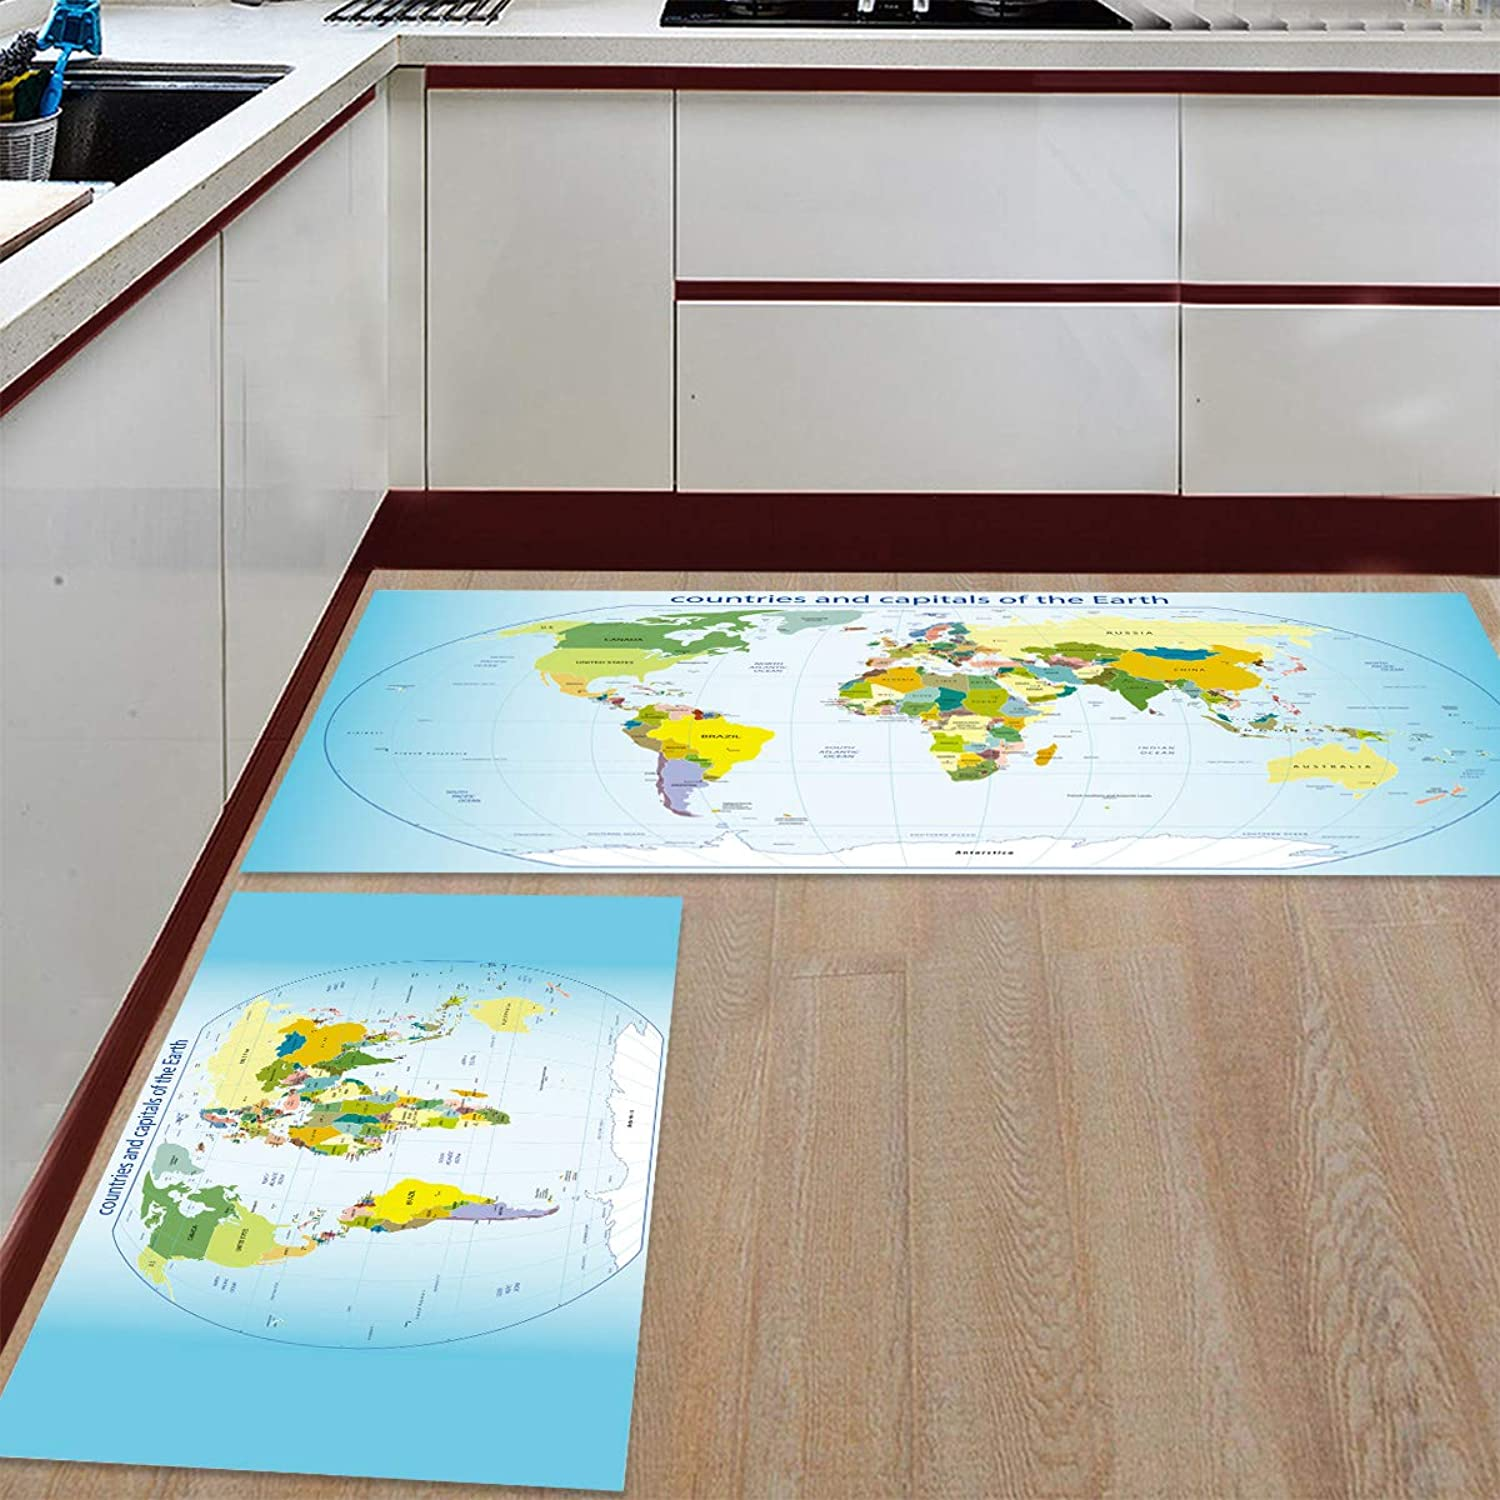 Kitchen Rugs Sets 2 Piece Floor Mats Countries and Capitals of The Earth Doormat Non-Slip Rubber Backing Area Rugs Washable Carpet Inside Door Mat Pad Sets (23.6  x 35.4 +23.6  x 70.9 )